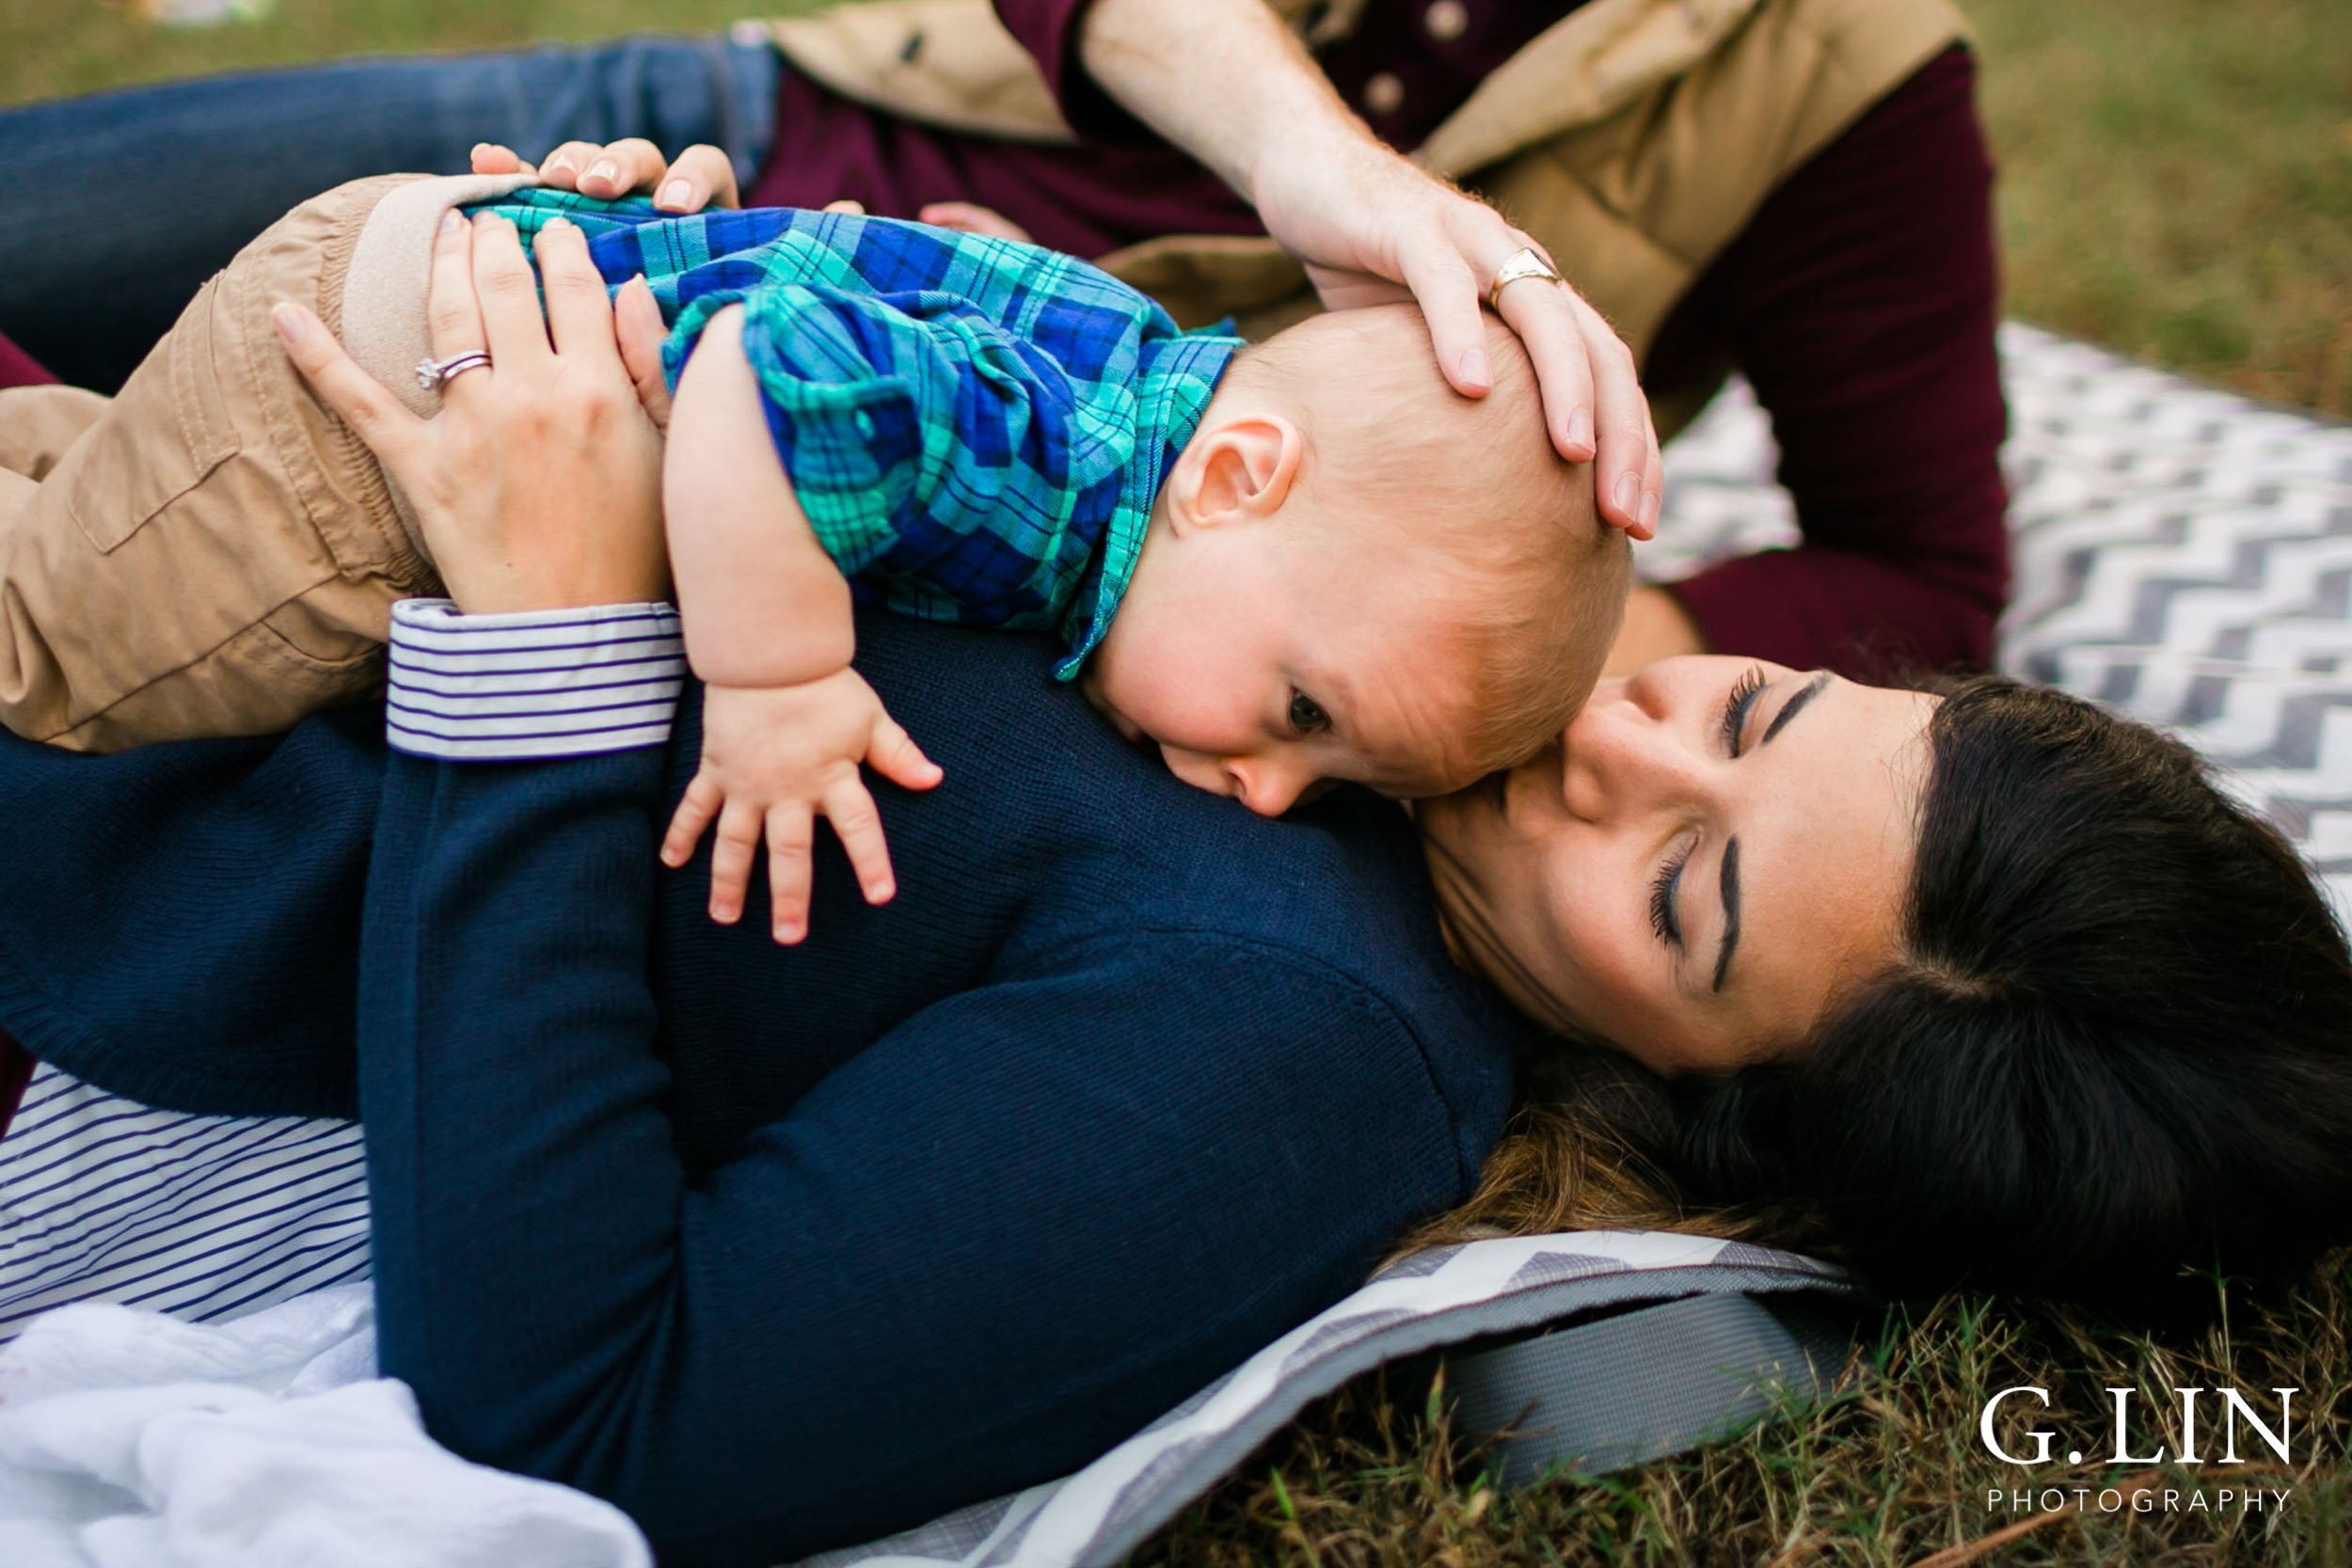 Precious moment between mom and baby | Raleigh Newborn Photographer | G. Lin Photography